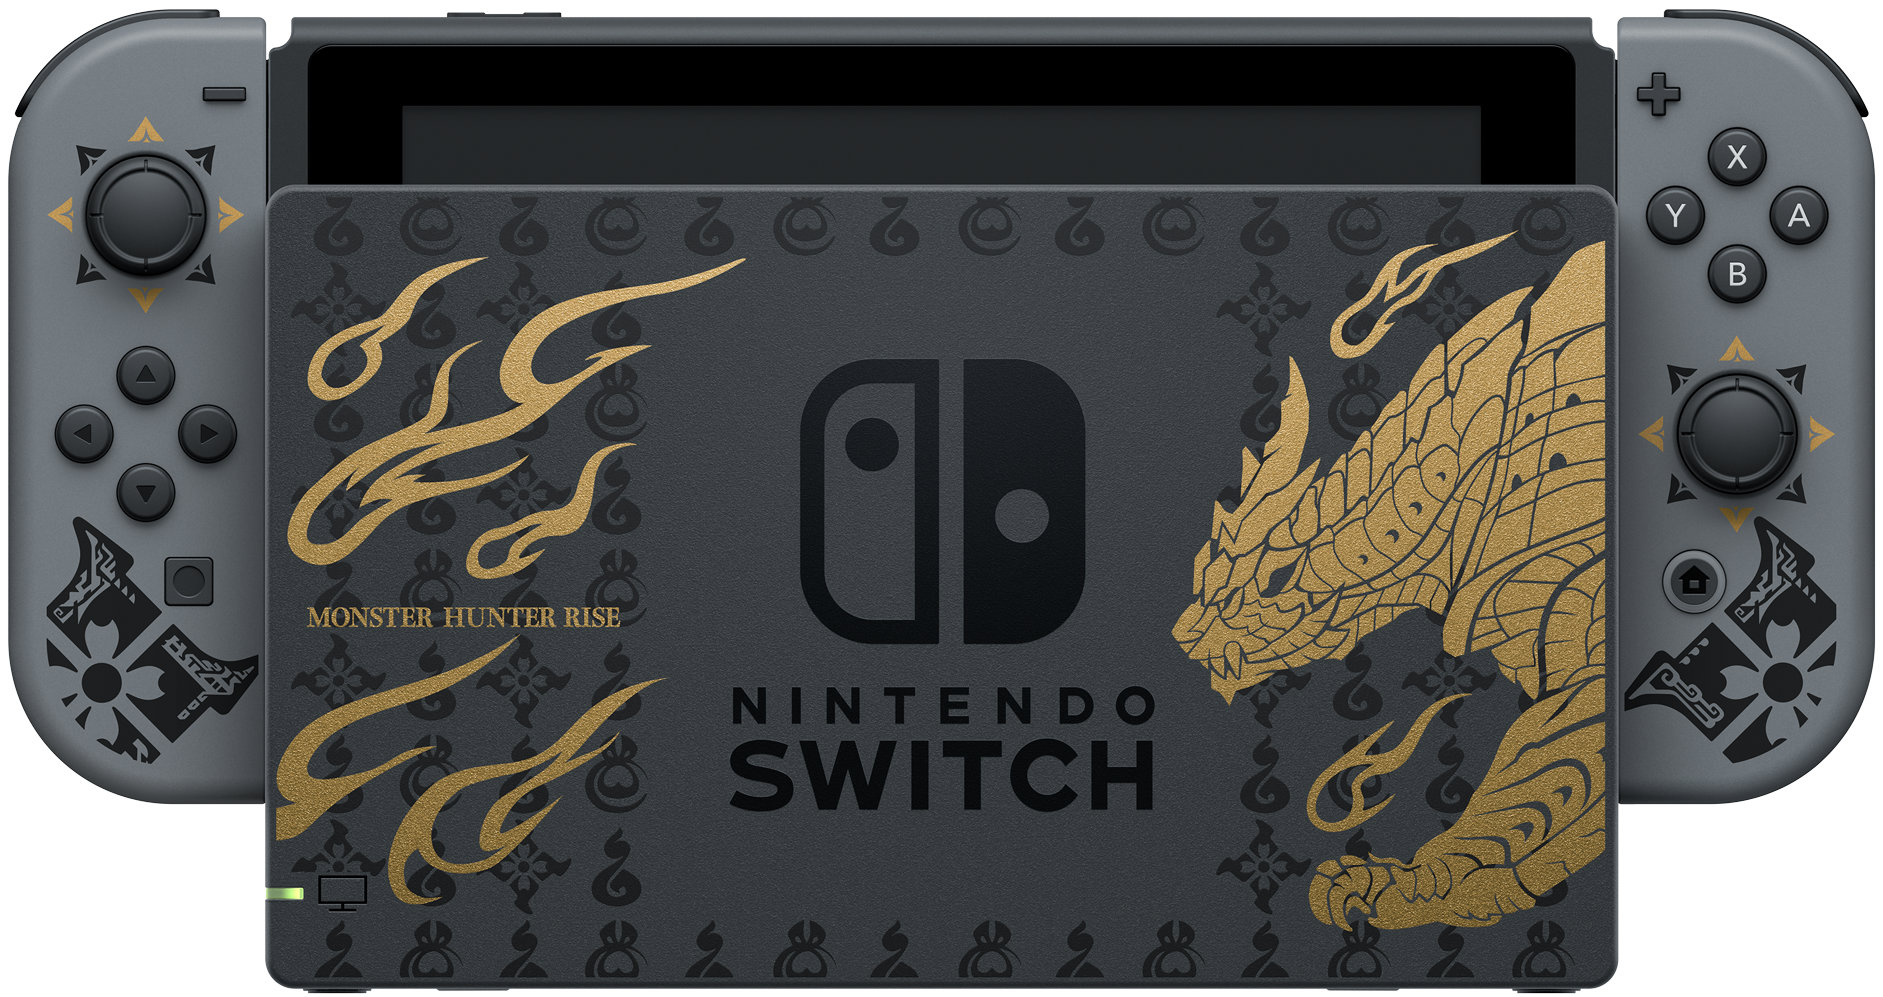 Quelle: Nintendo - Nintendo Switch Monster Hunter Rise Limited Edition